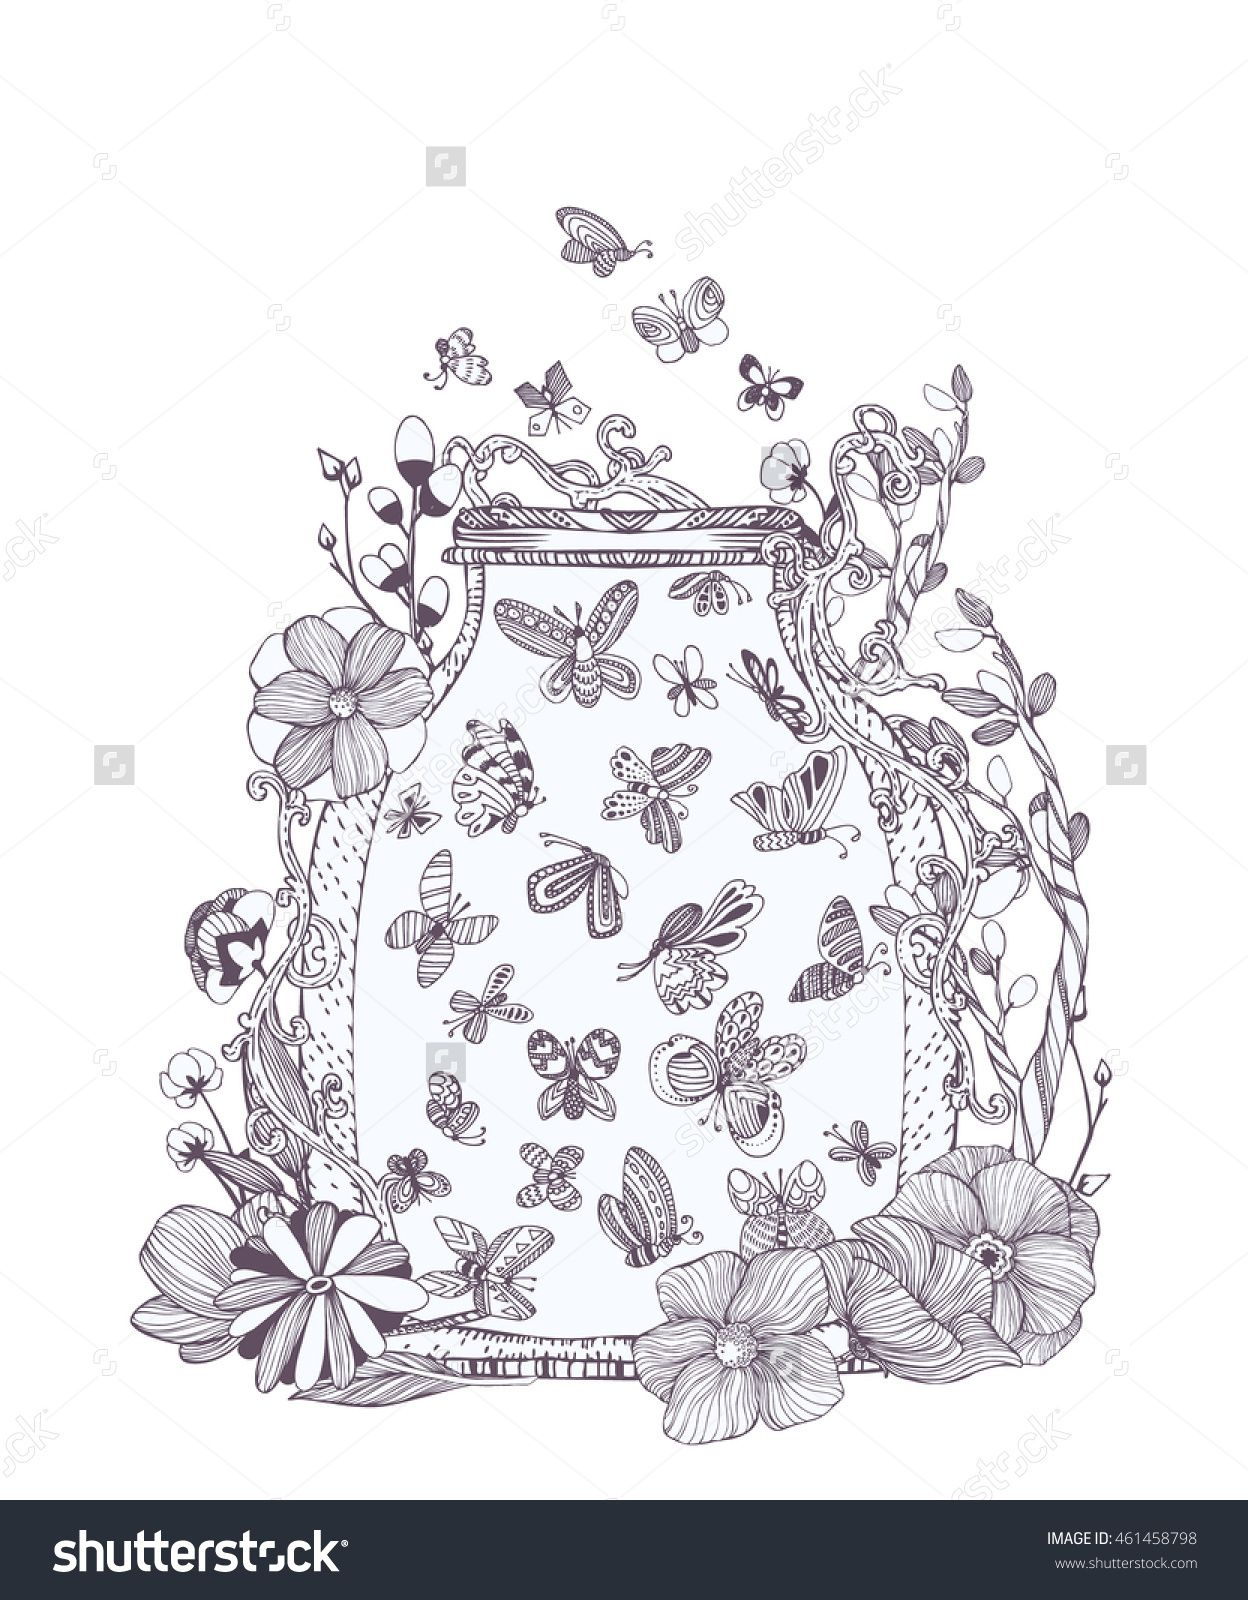 Image result for firefly coloring pages | Coloring Pages | Pinterest ...